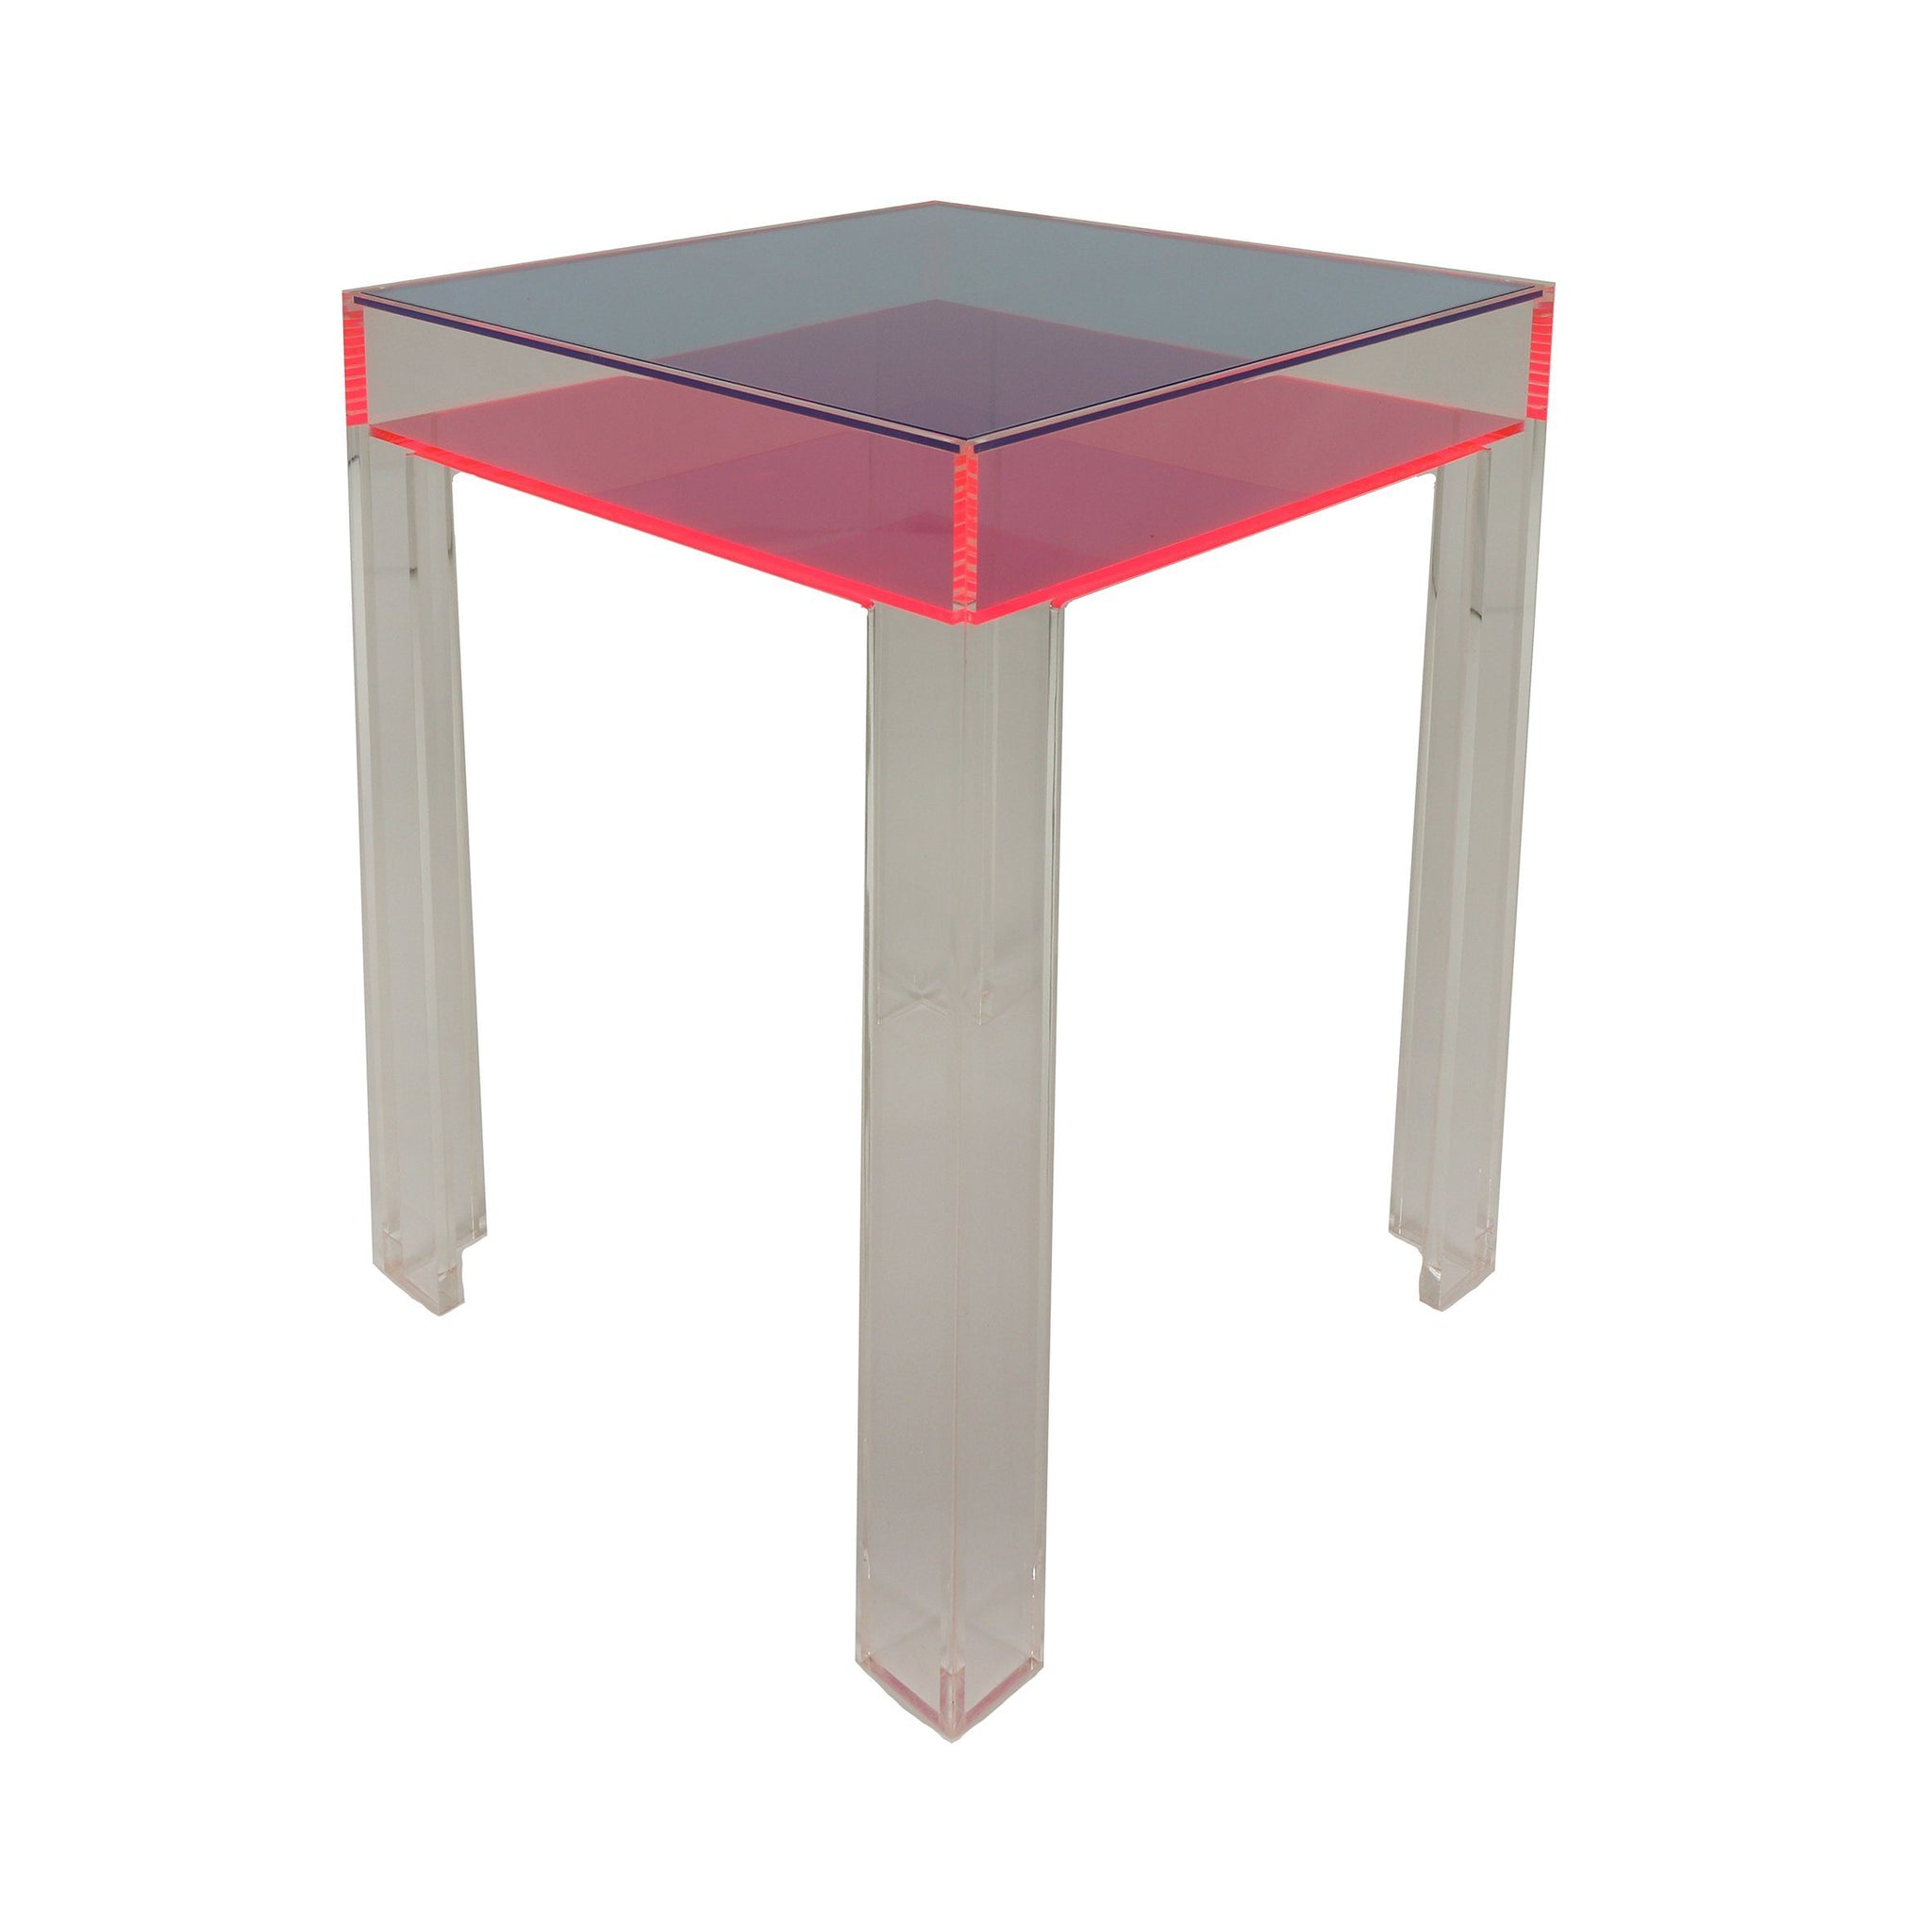 'Neon Equinox Table' by Dio Davies - A Modern Grand Tour